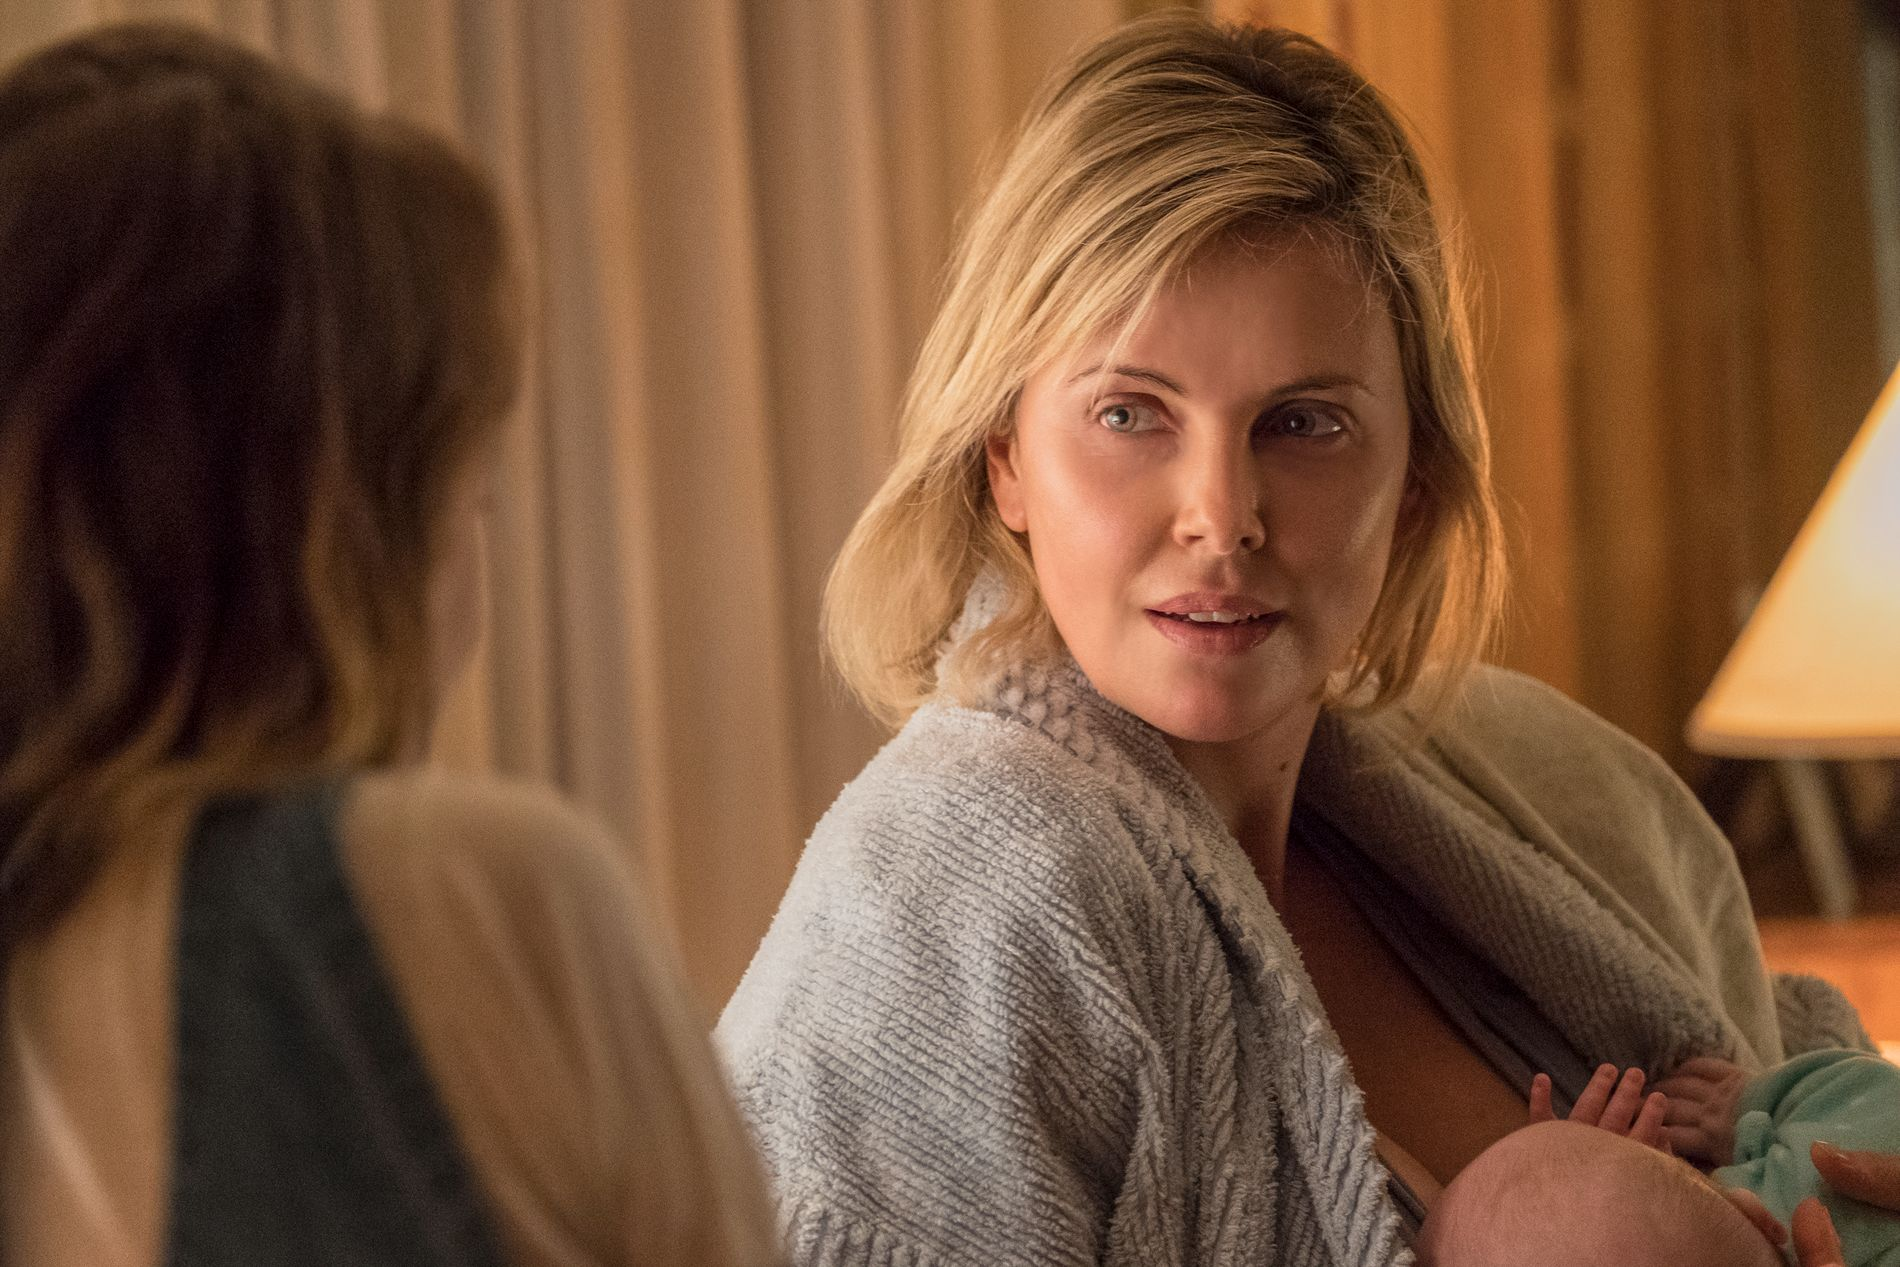 AMMA MIA: Charlize Theron i «Tully».